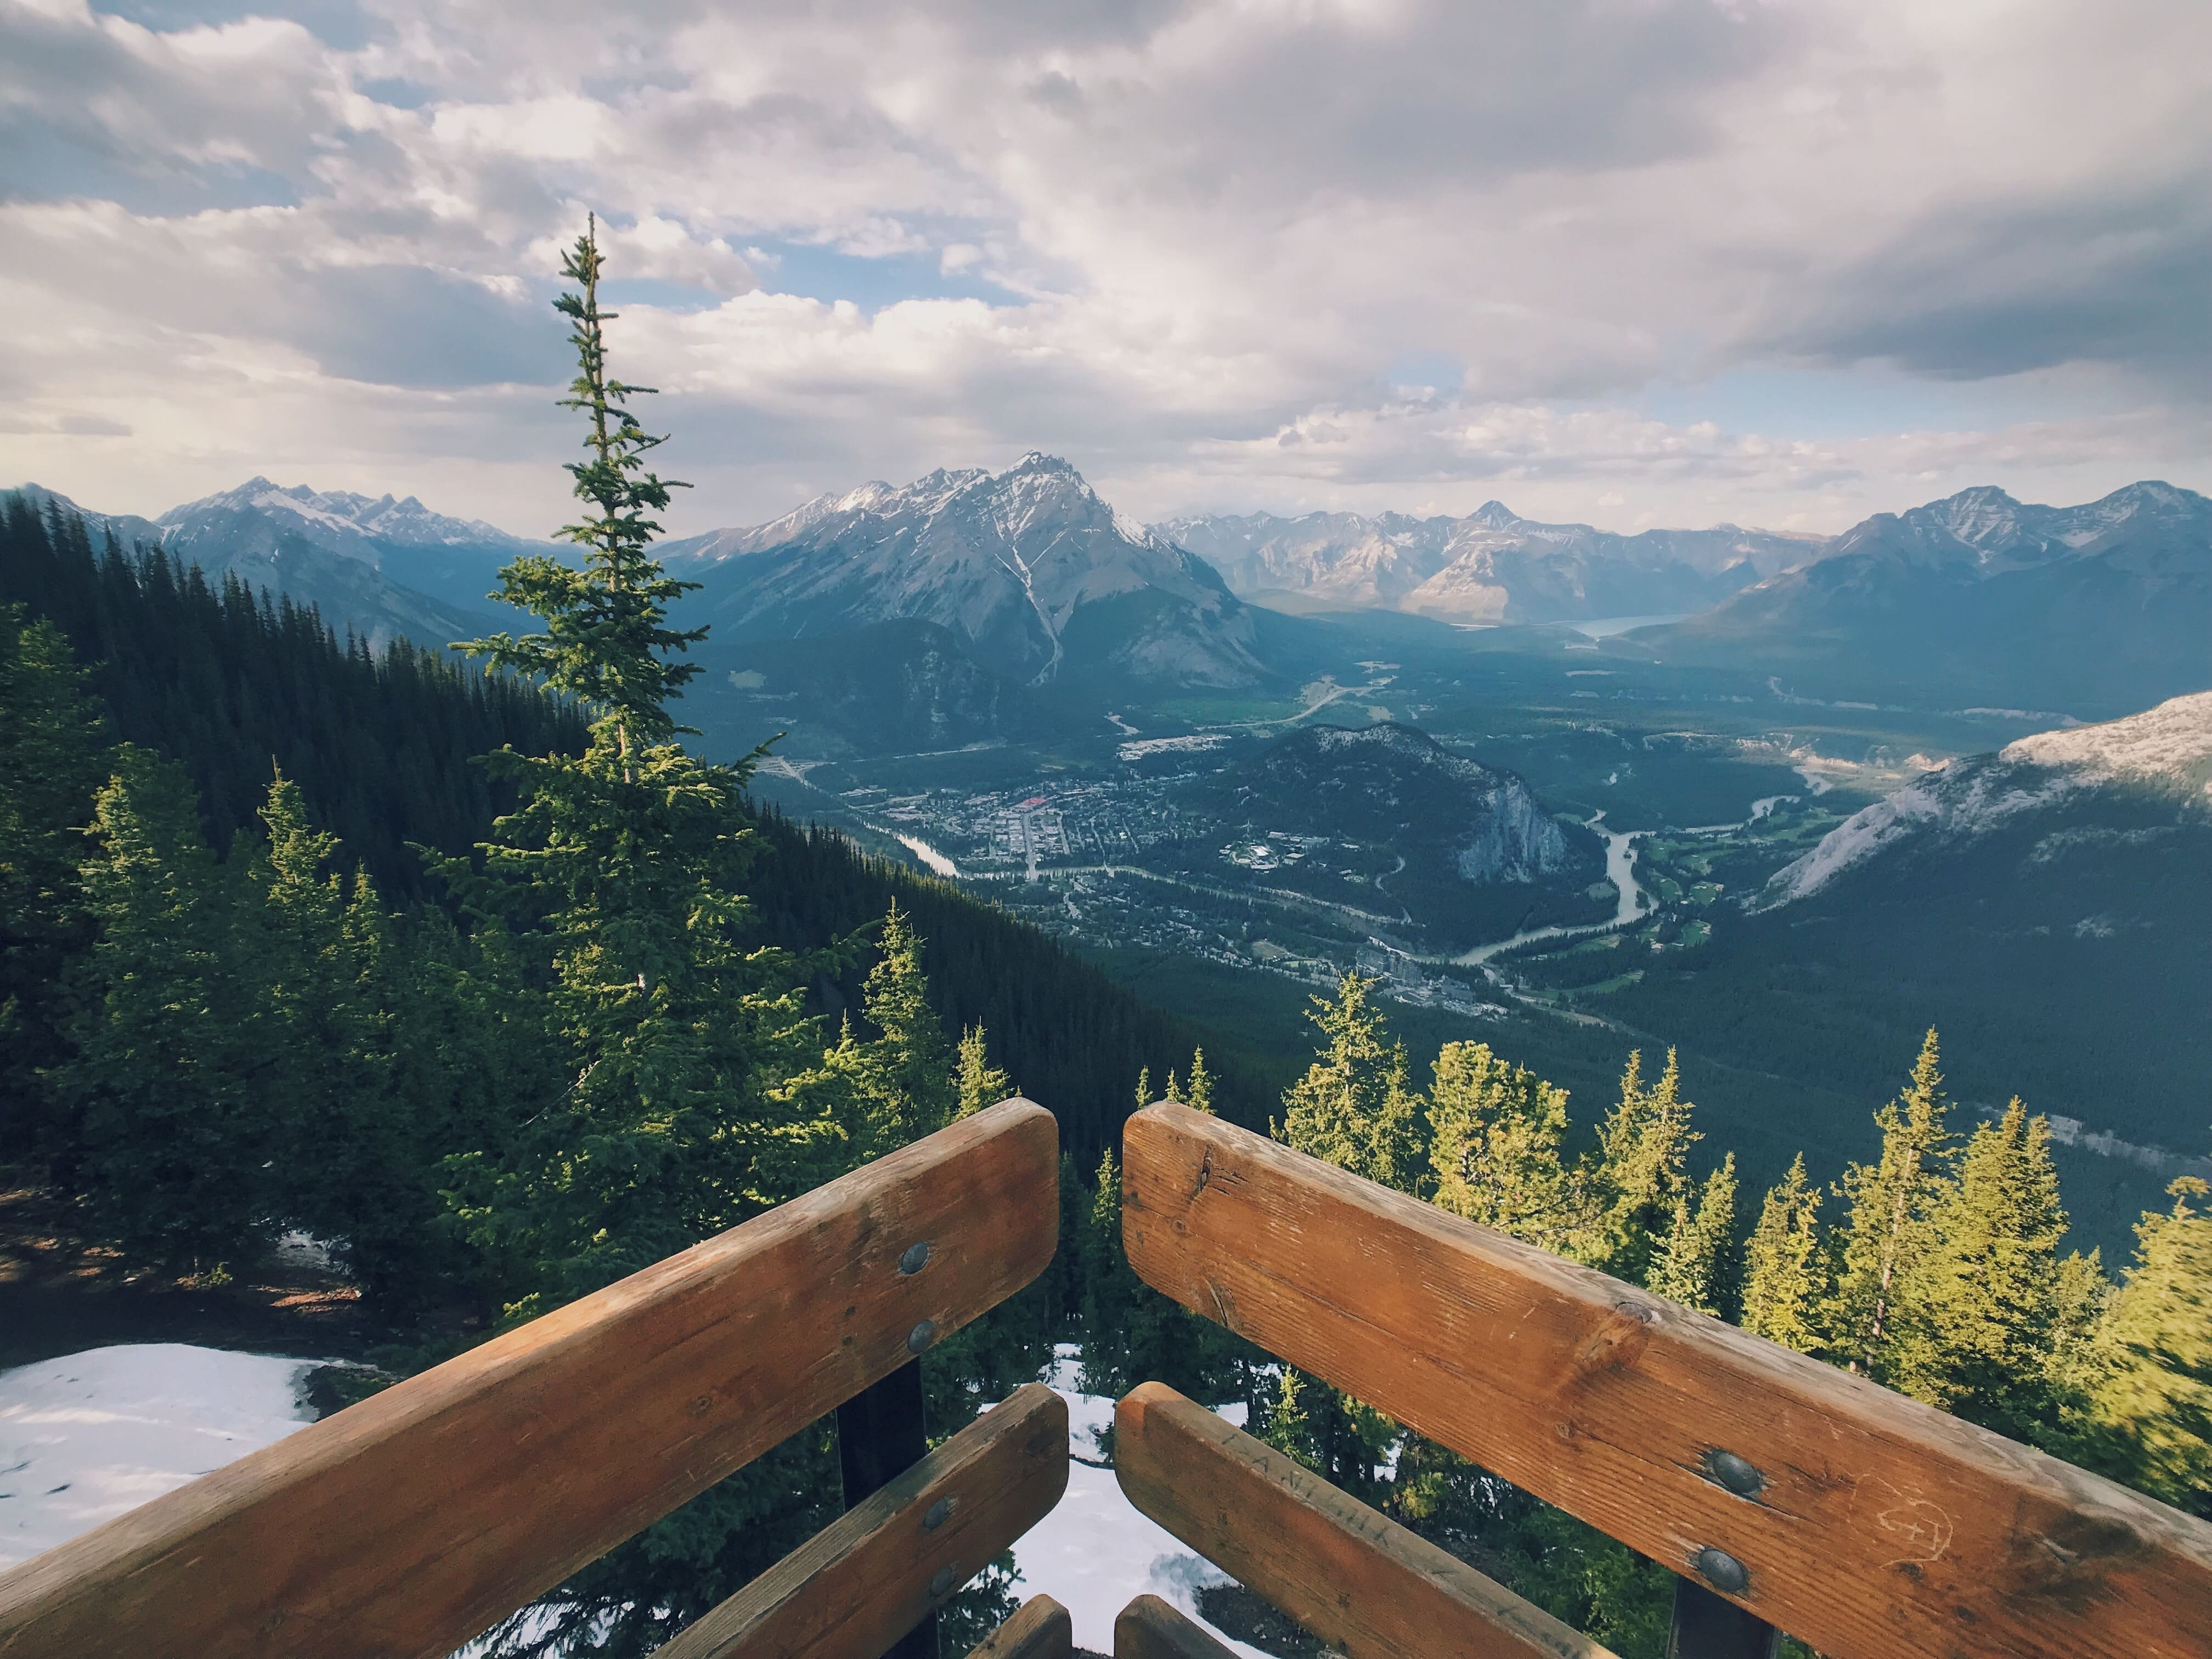 landscape-of-canada